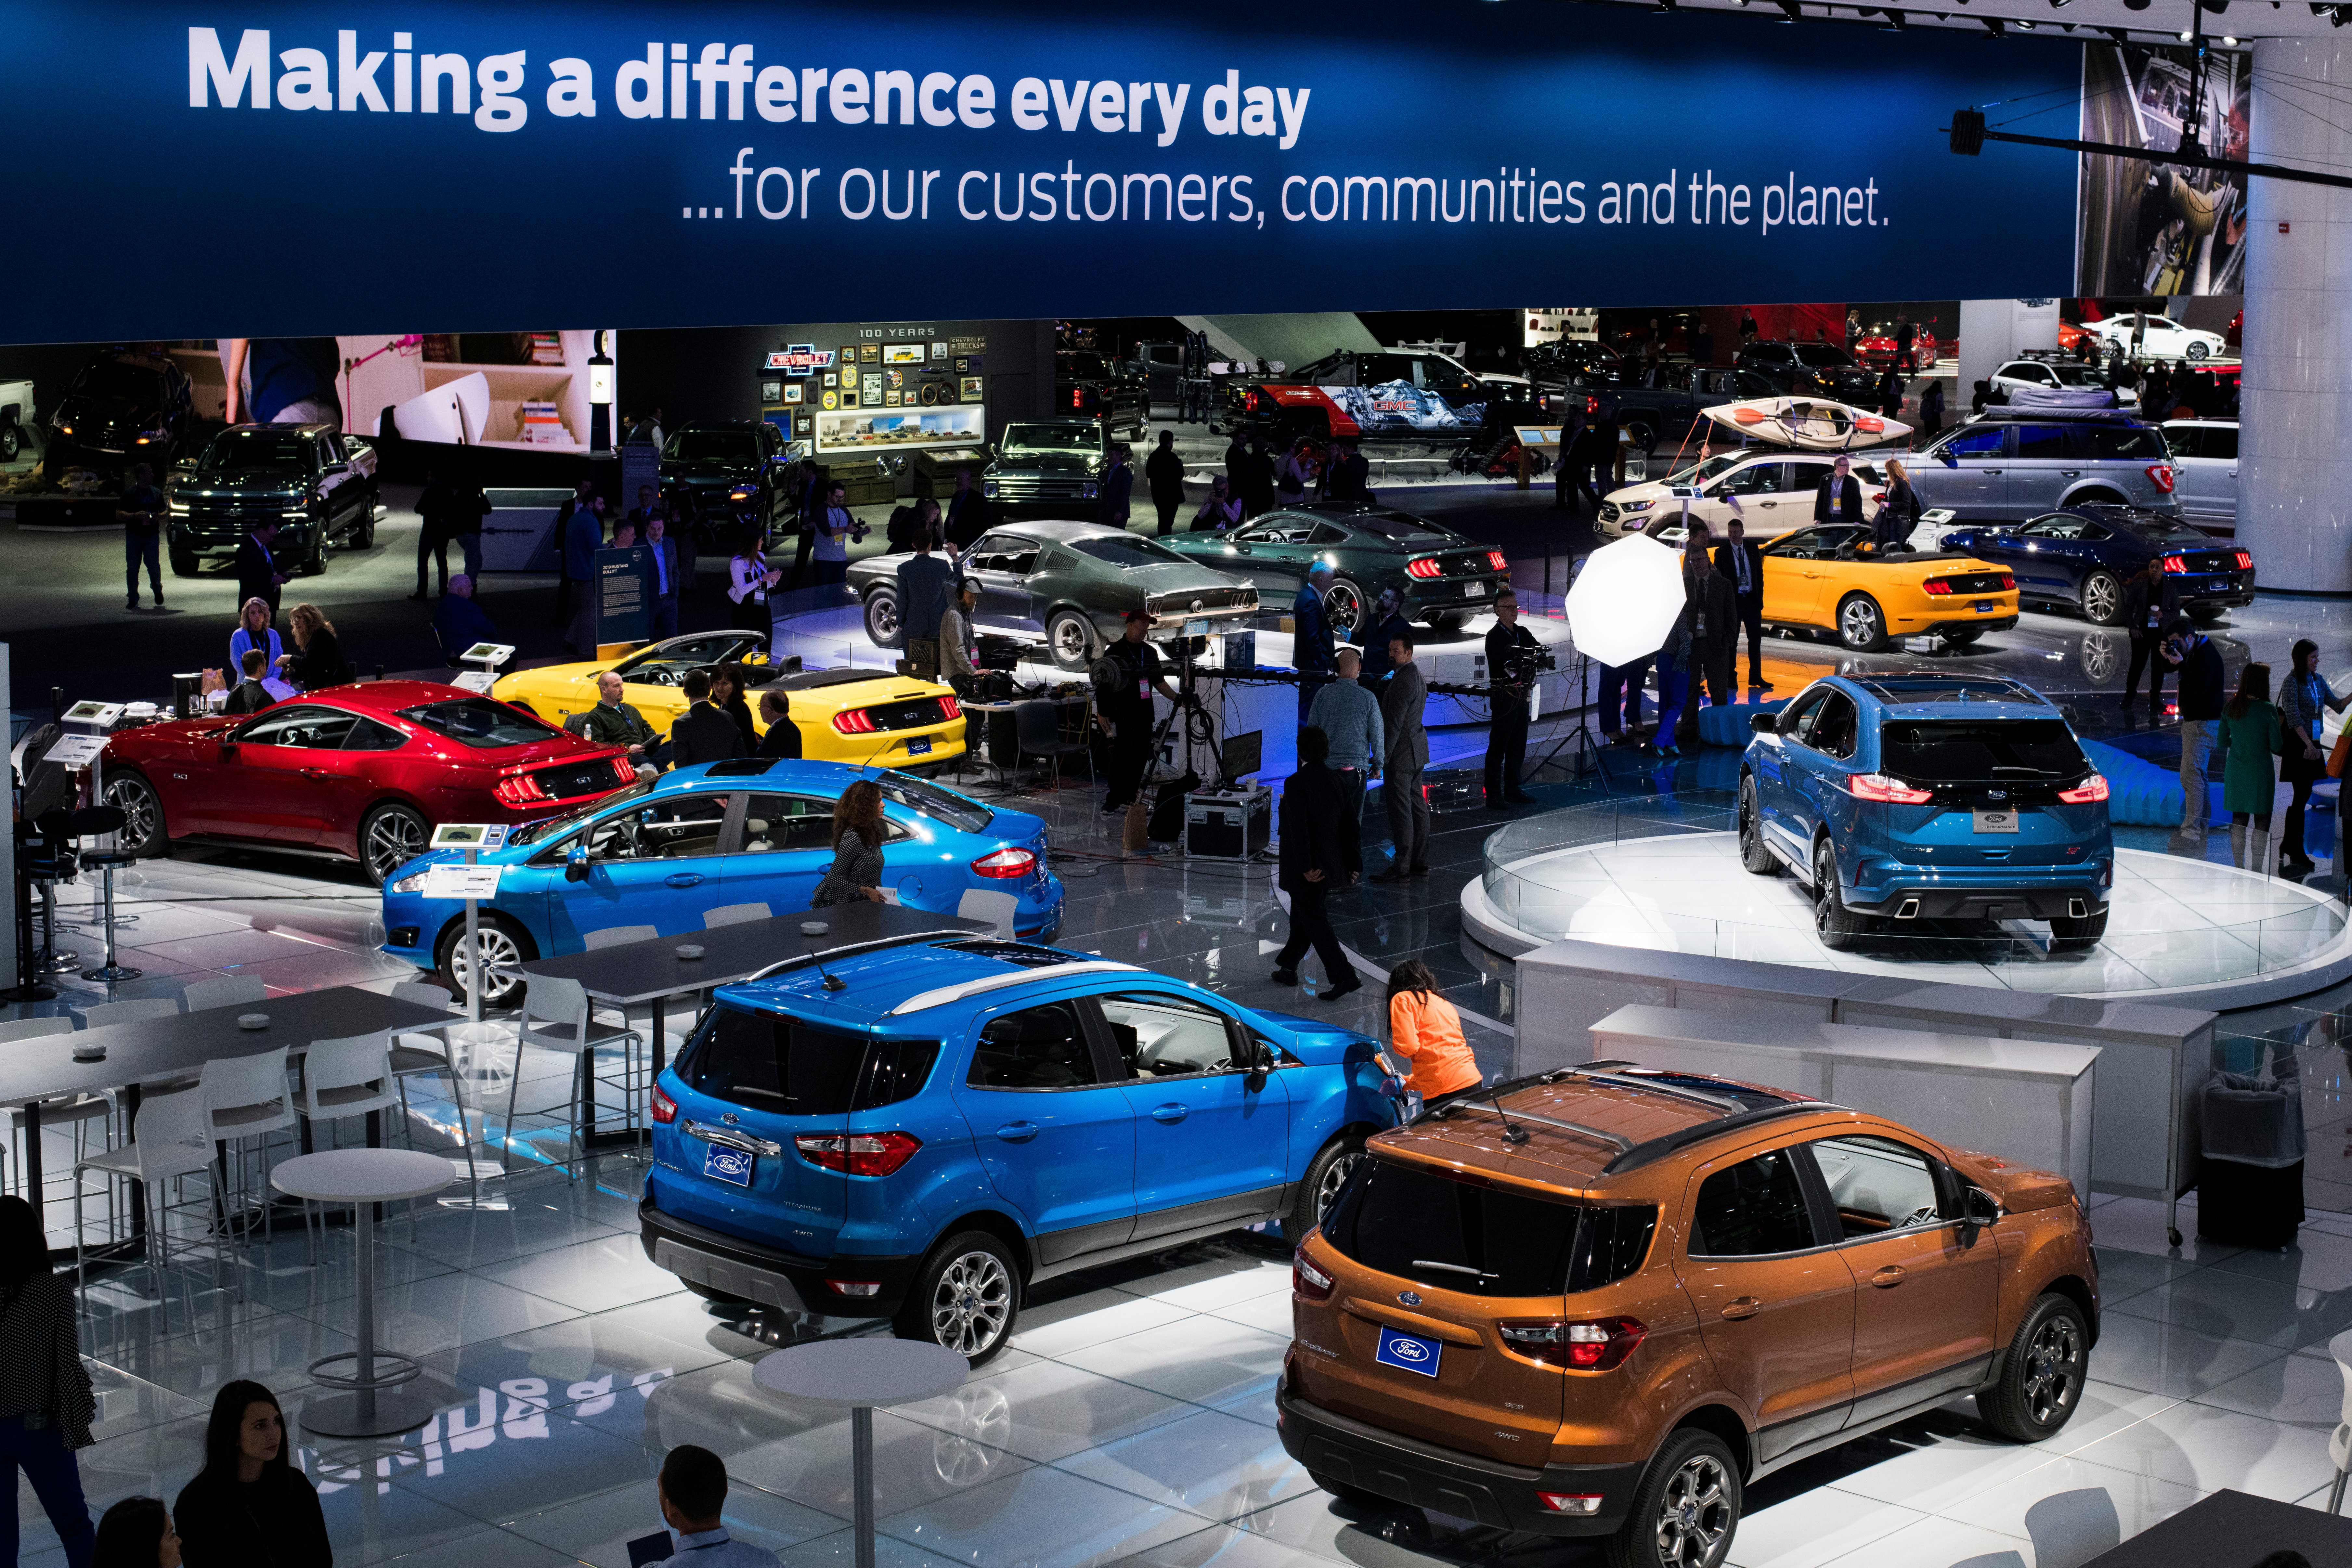 Ford cars at the Detroit Auto Show